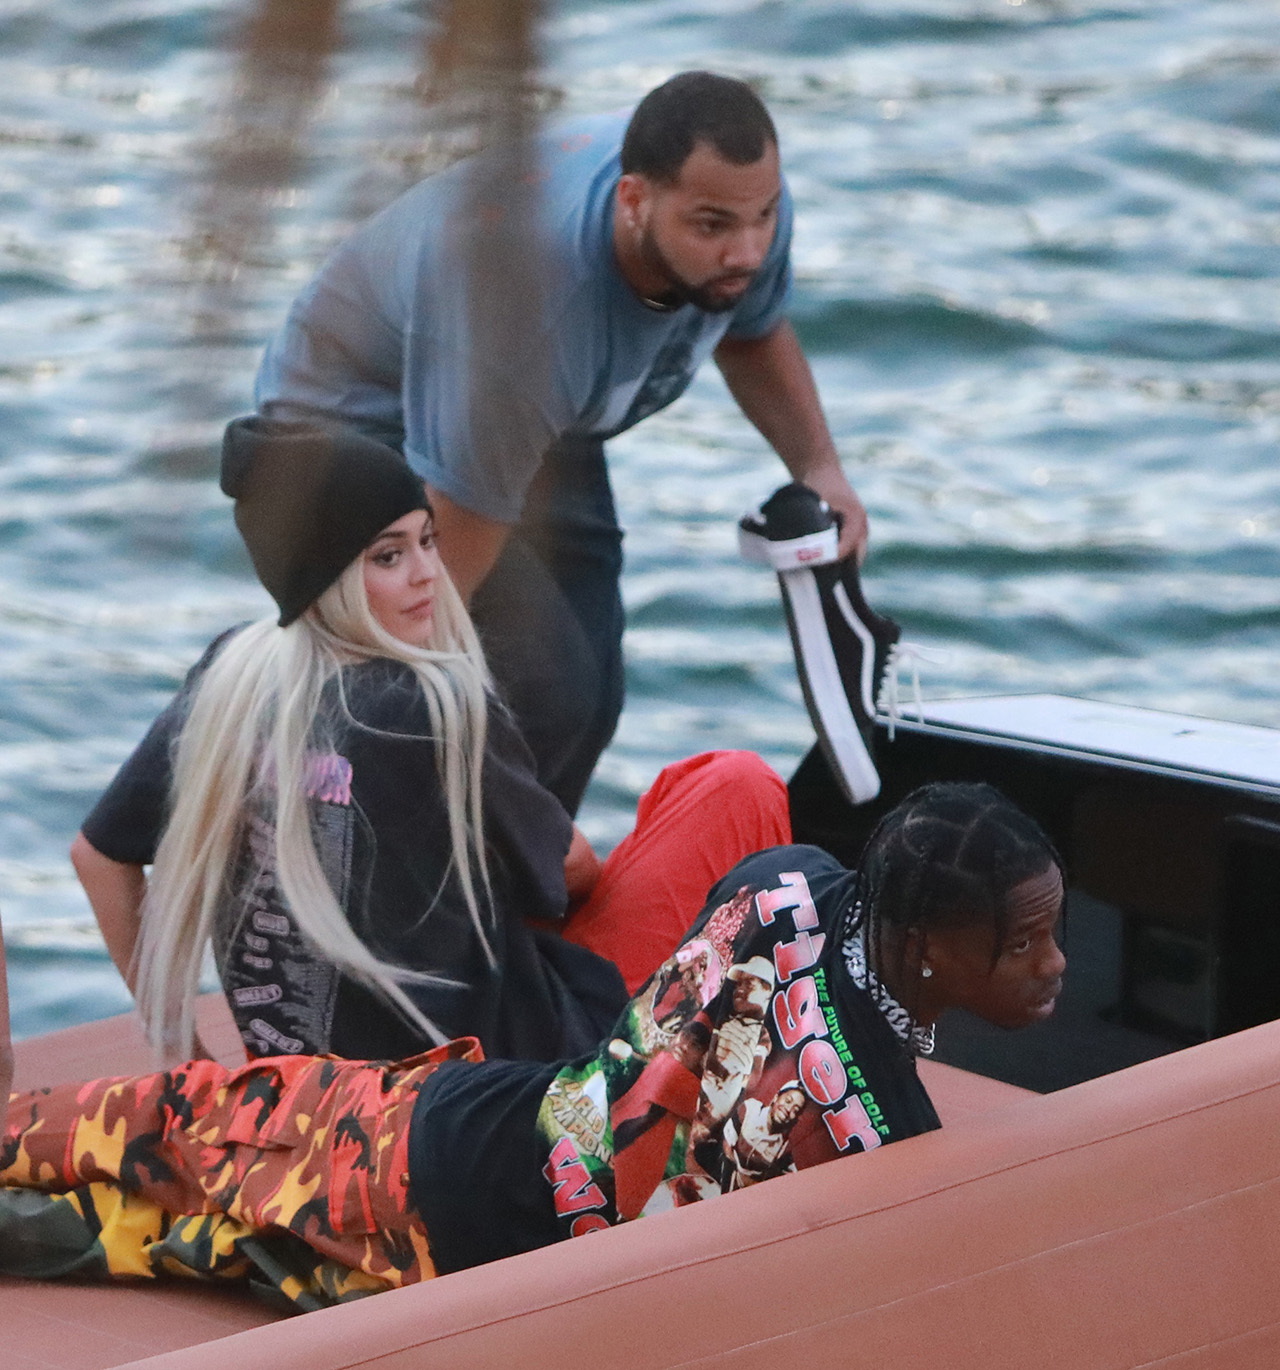 "EXCLUSIVE: Kylie Jenner goes back to being a blonde (like she was with X-Boyfriend Tyga) seen here are the first pictures of a very ""BLONDE"" Kylie Jenner and her new boyfriend Jacques Webster, Jr. better know as hip-hop singer Travis Scott. The lovebirds arrived by yacht and dined in a private back room of the exclusive restaurant the River Yacht Club where Kylie and Travis looked very happy and were spotted kissing and being very romantic while bodyguards kept out unwanted people. The new couple had a blast at the exclusive waterside restaurant where they were joined by Miami-based restaurant, nightlife and hospitality entrepreneur David Grutman and his wife Isabela Rangel. While Kylie drank Evian water all night her new man Rapper Travis Scott was in full party mode and did a total of 17 shots of Don Julio 1942™- World's First Luxury Tequila‎ with their friends. Perhaps the Tequila took its toll, as Travis looked a little under the weather on the boat ride home. The couple spent a total of $2000.00 with their friends and left a very generous additional $100.00 in addition to the 20% tip at The River Yacht Club Restaurant in Miami on May 7, 2017 in Miami, Florida. 07 May 2017 Pictured: Kylie Jenner, Travis-Scott. Photo credit: TBA / MEGA TheMegaAgency.com +1 888 505 6342 (Mega Agency TagID: MEGA34150_011.jpg) [Photo via Mega Agency]"